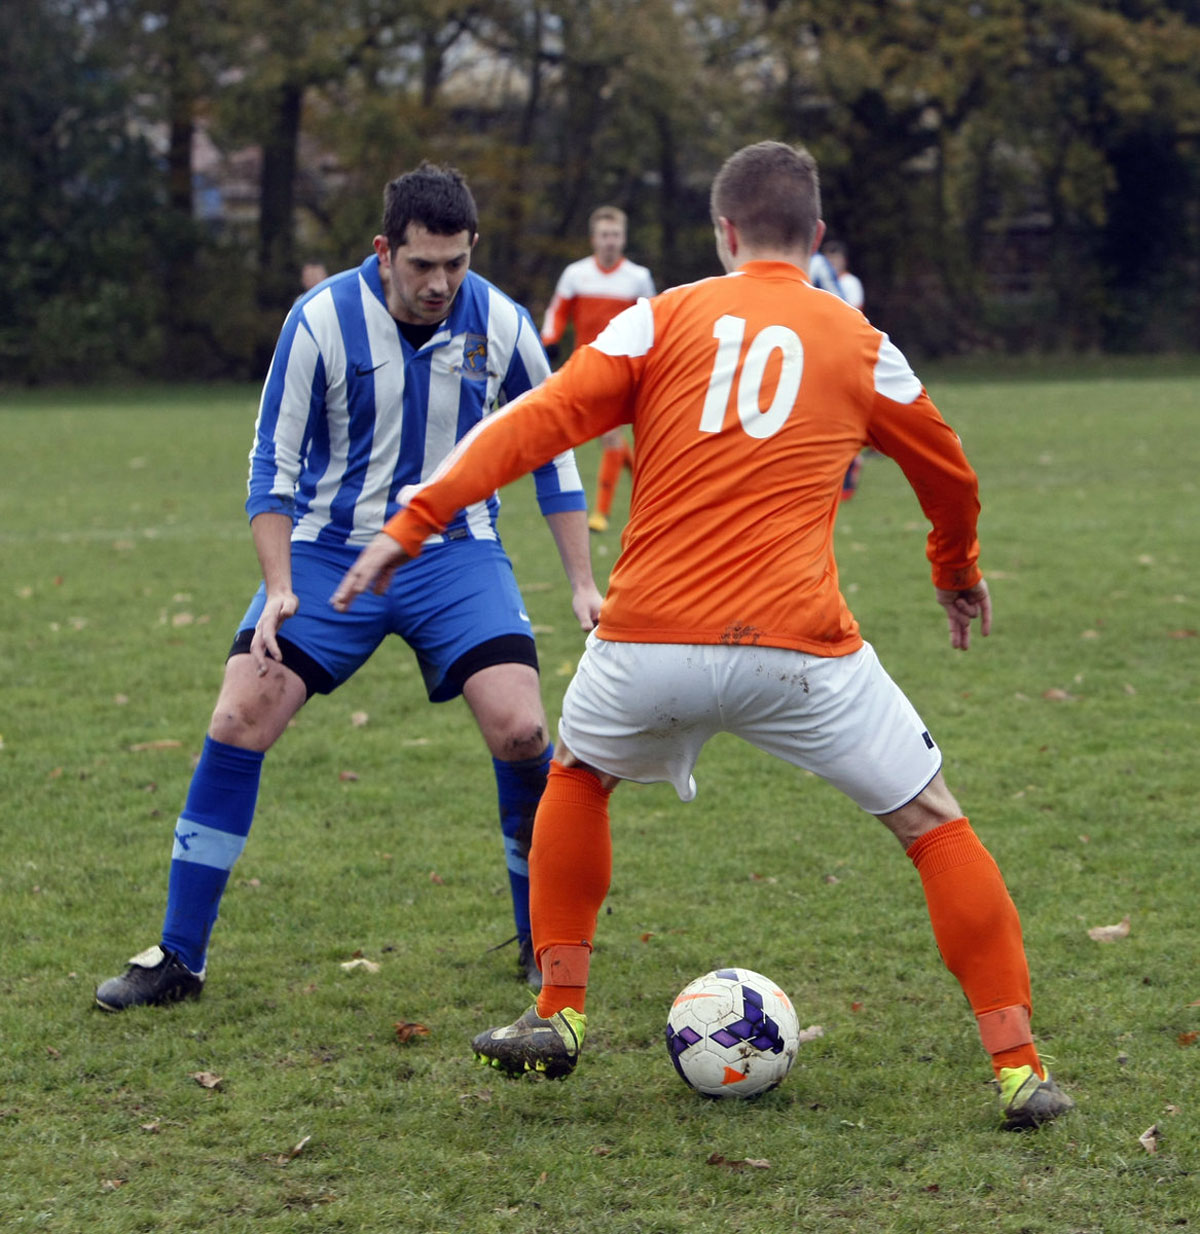 Croxley Green Community Centre (orange shirts) shocked Oakview in the Premier Division. Picture: Pippa Douglas